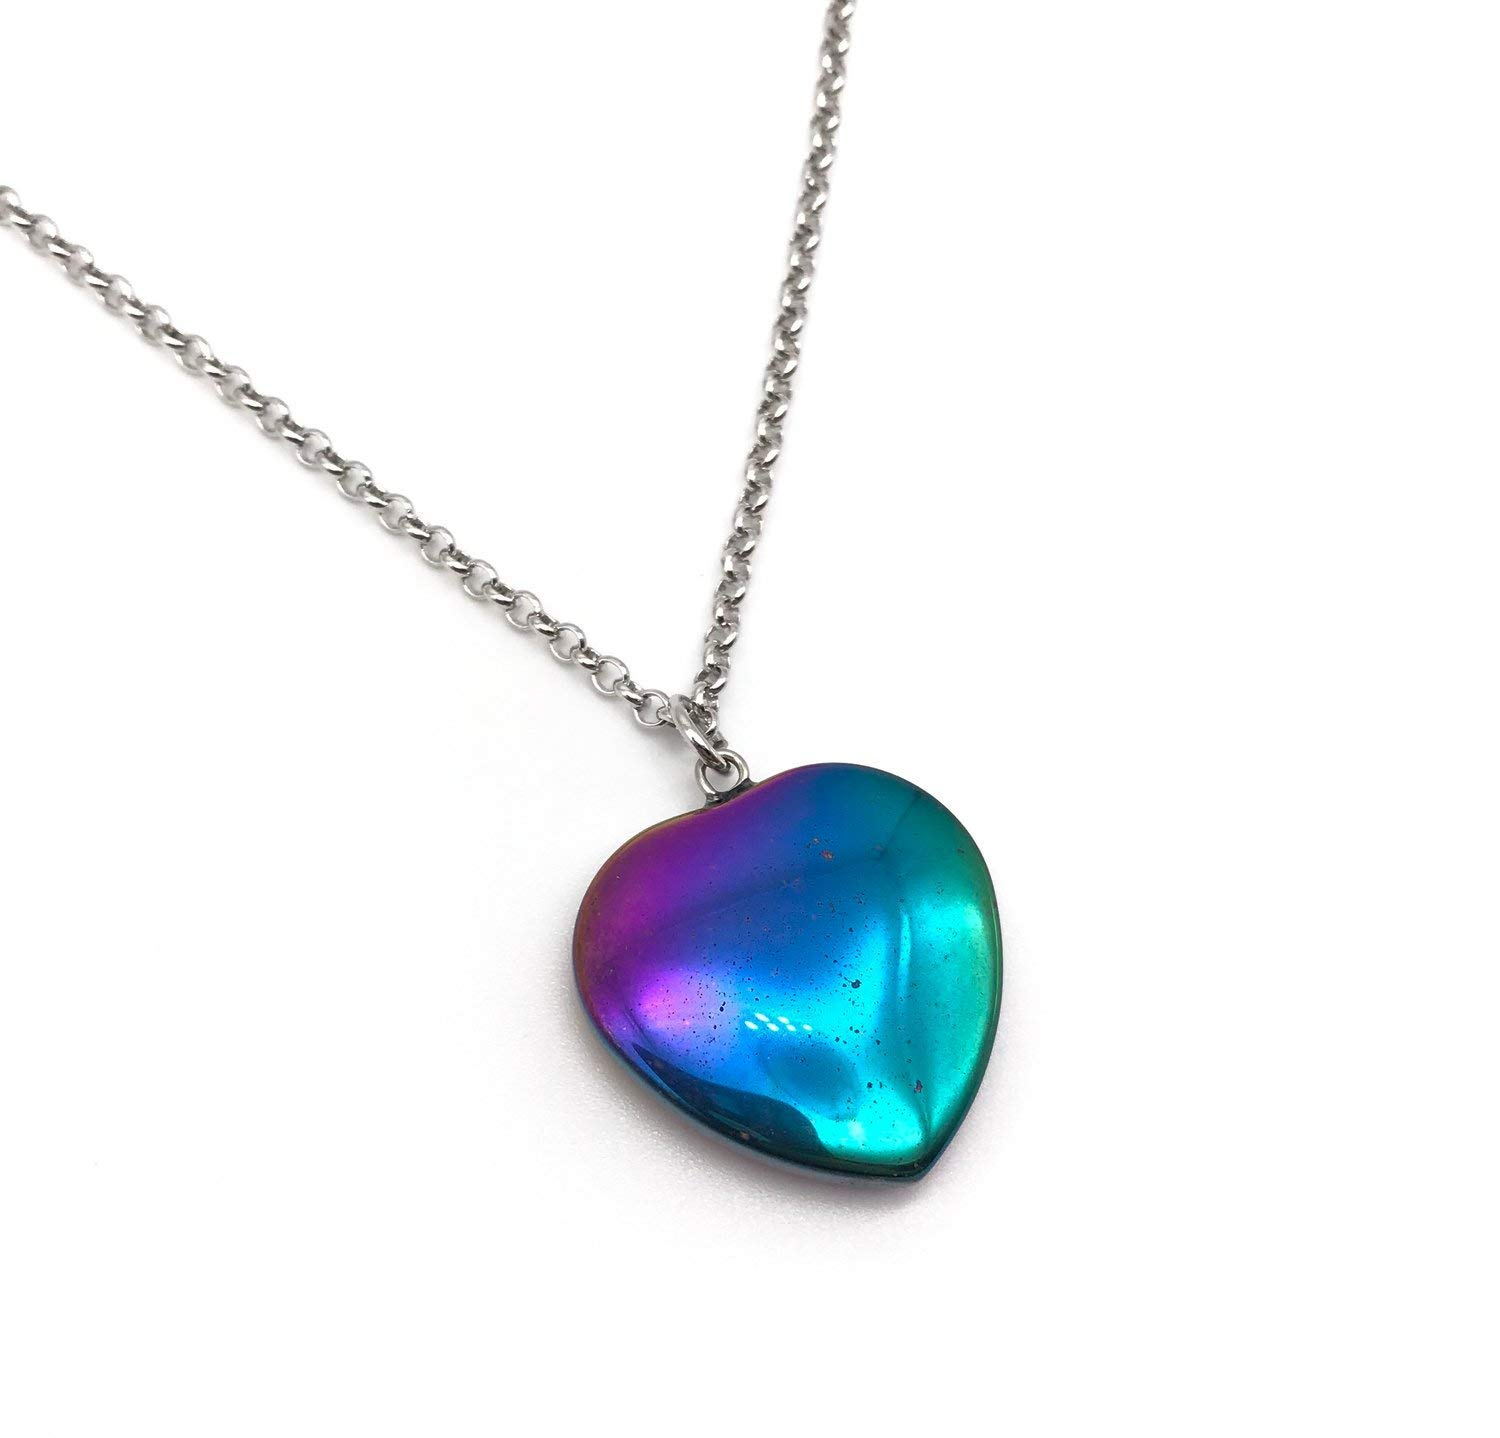 Rainbow Hematite Heart Shape Pendant Necklace Equality Necklace 22 inches